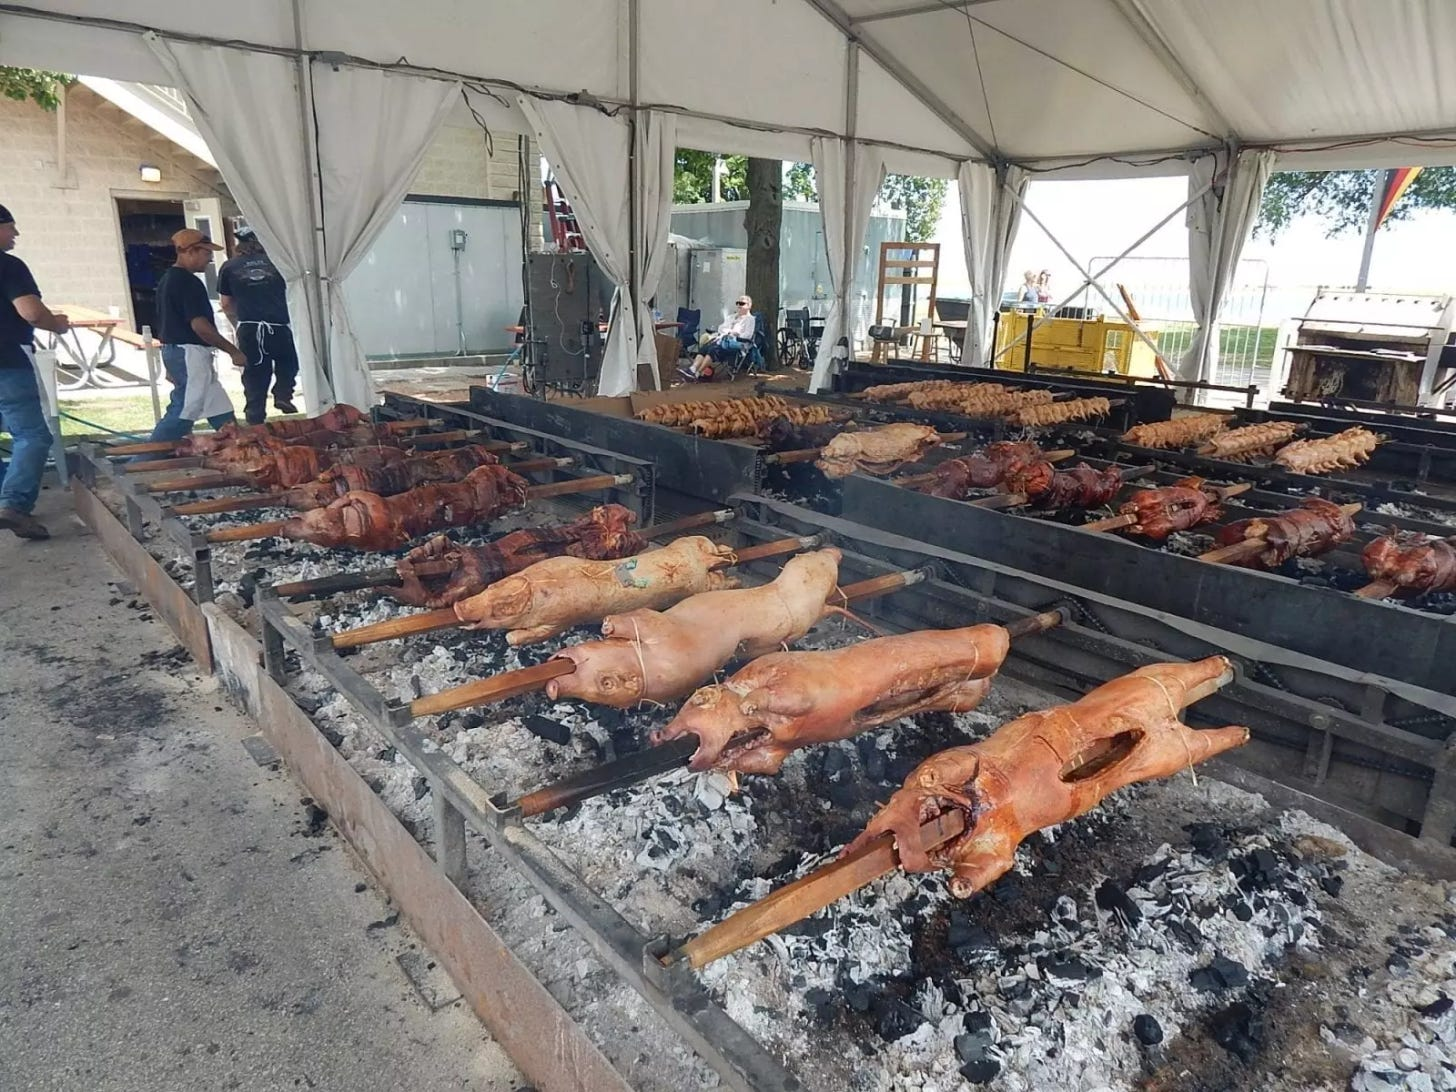 What is Spanferkel? A Roasted Pig, Perfect for Any German Festival!